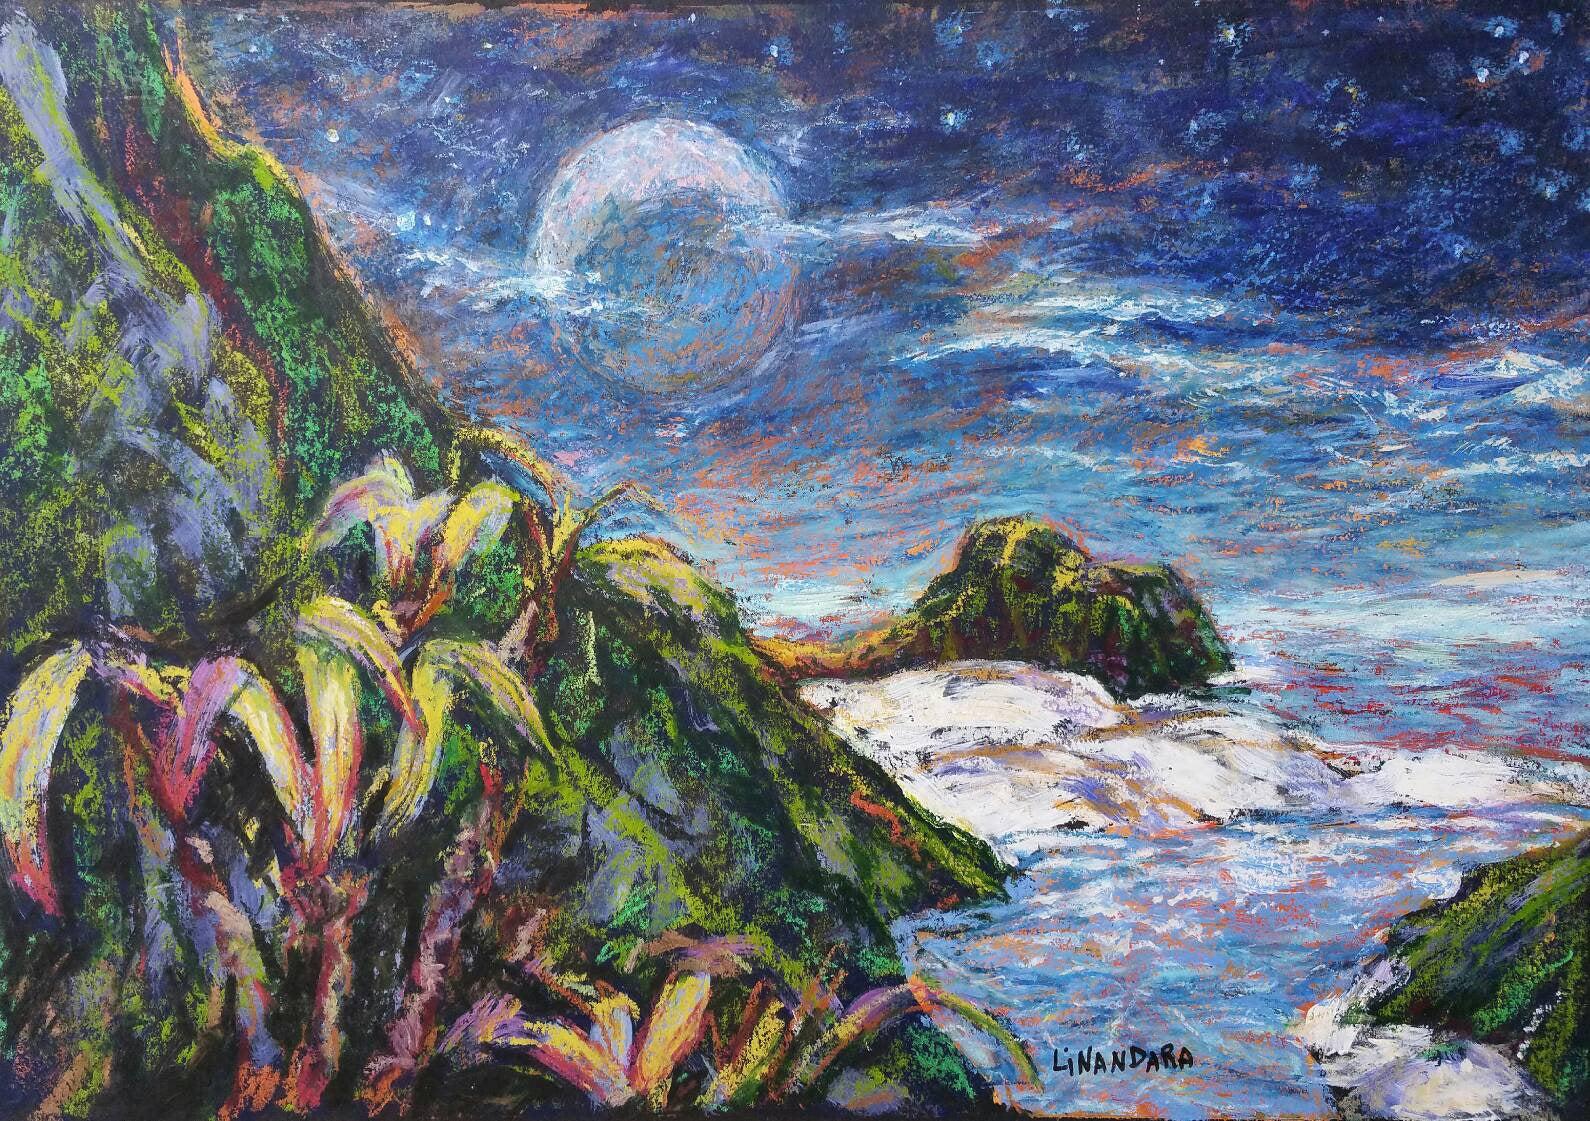 Distant Shores and a Moon's Birthday, Oil Pastel and Acrylics fantasy painting on black card, A3 42 × 30 cm